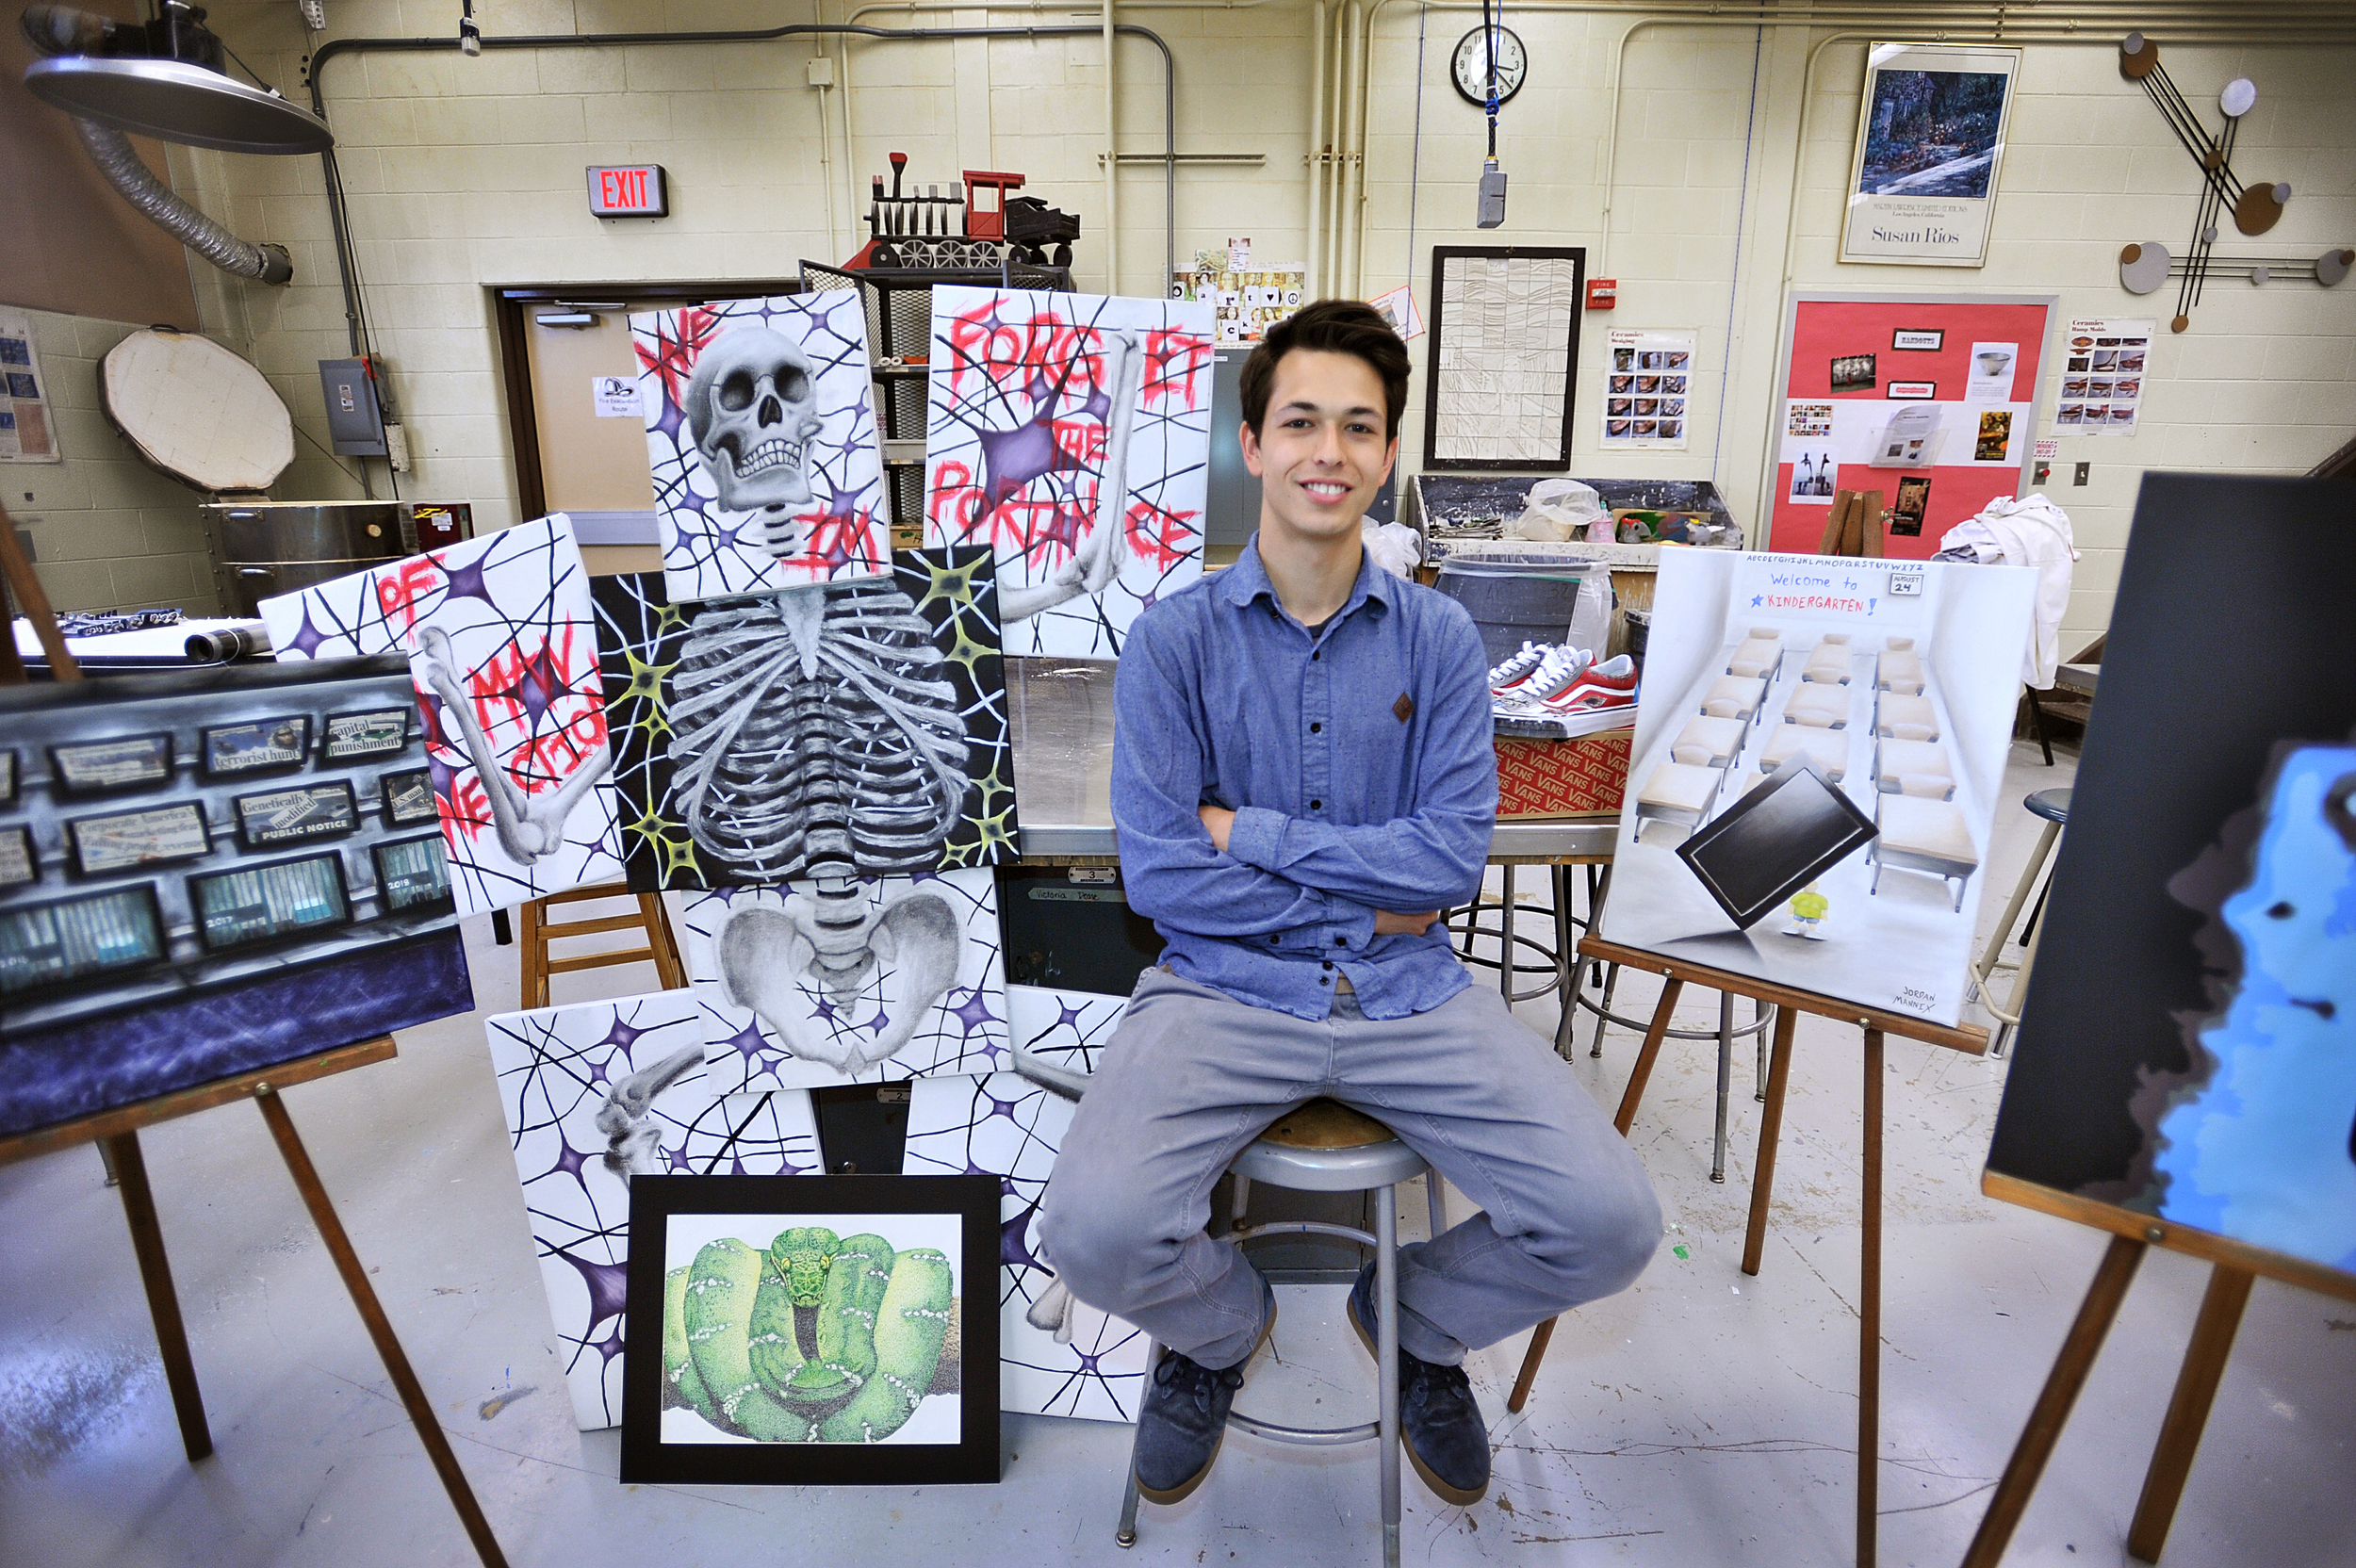 Jordan Mannix, a senior at Wilson High School, poses for a portrait on May 17, 2016, with some of his favorite pieces of artwork that he's done this year.